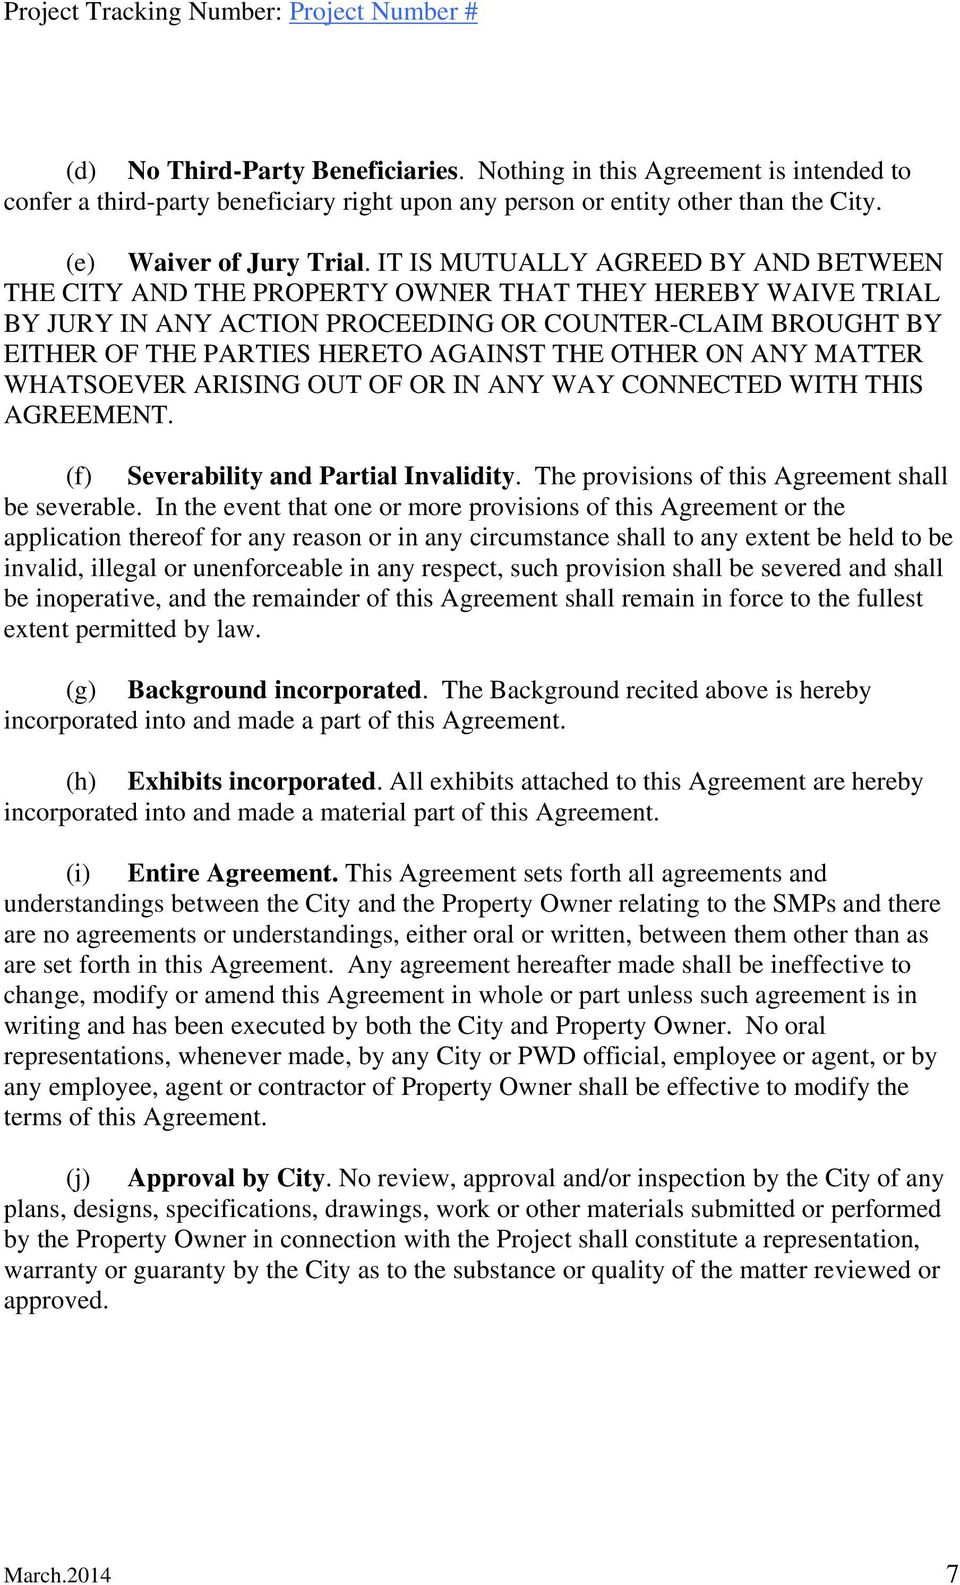 OTHER ON ANY MATTER WHATSOEVER ARISING OUT OF OR IN ANY WAY CONNECTED WITH THIS AGREEMENT. (f) Severability and Partial Invalidity. The provisions of this Agreement shall be severable.